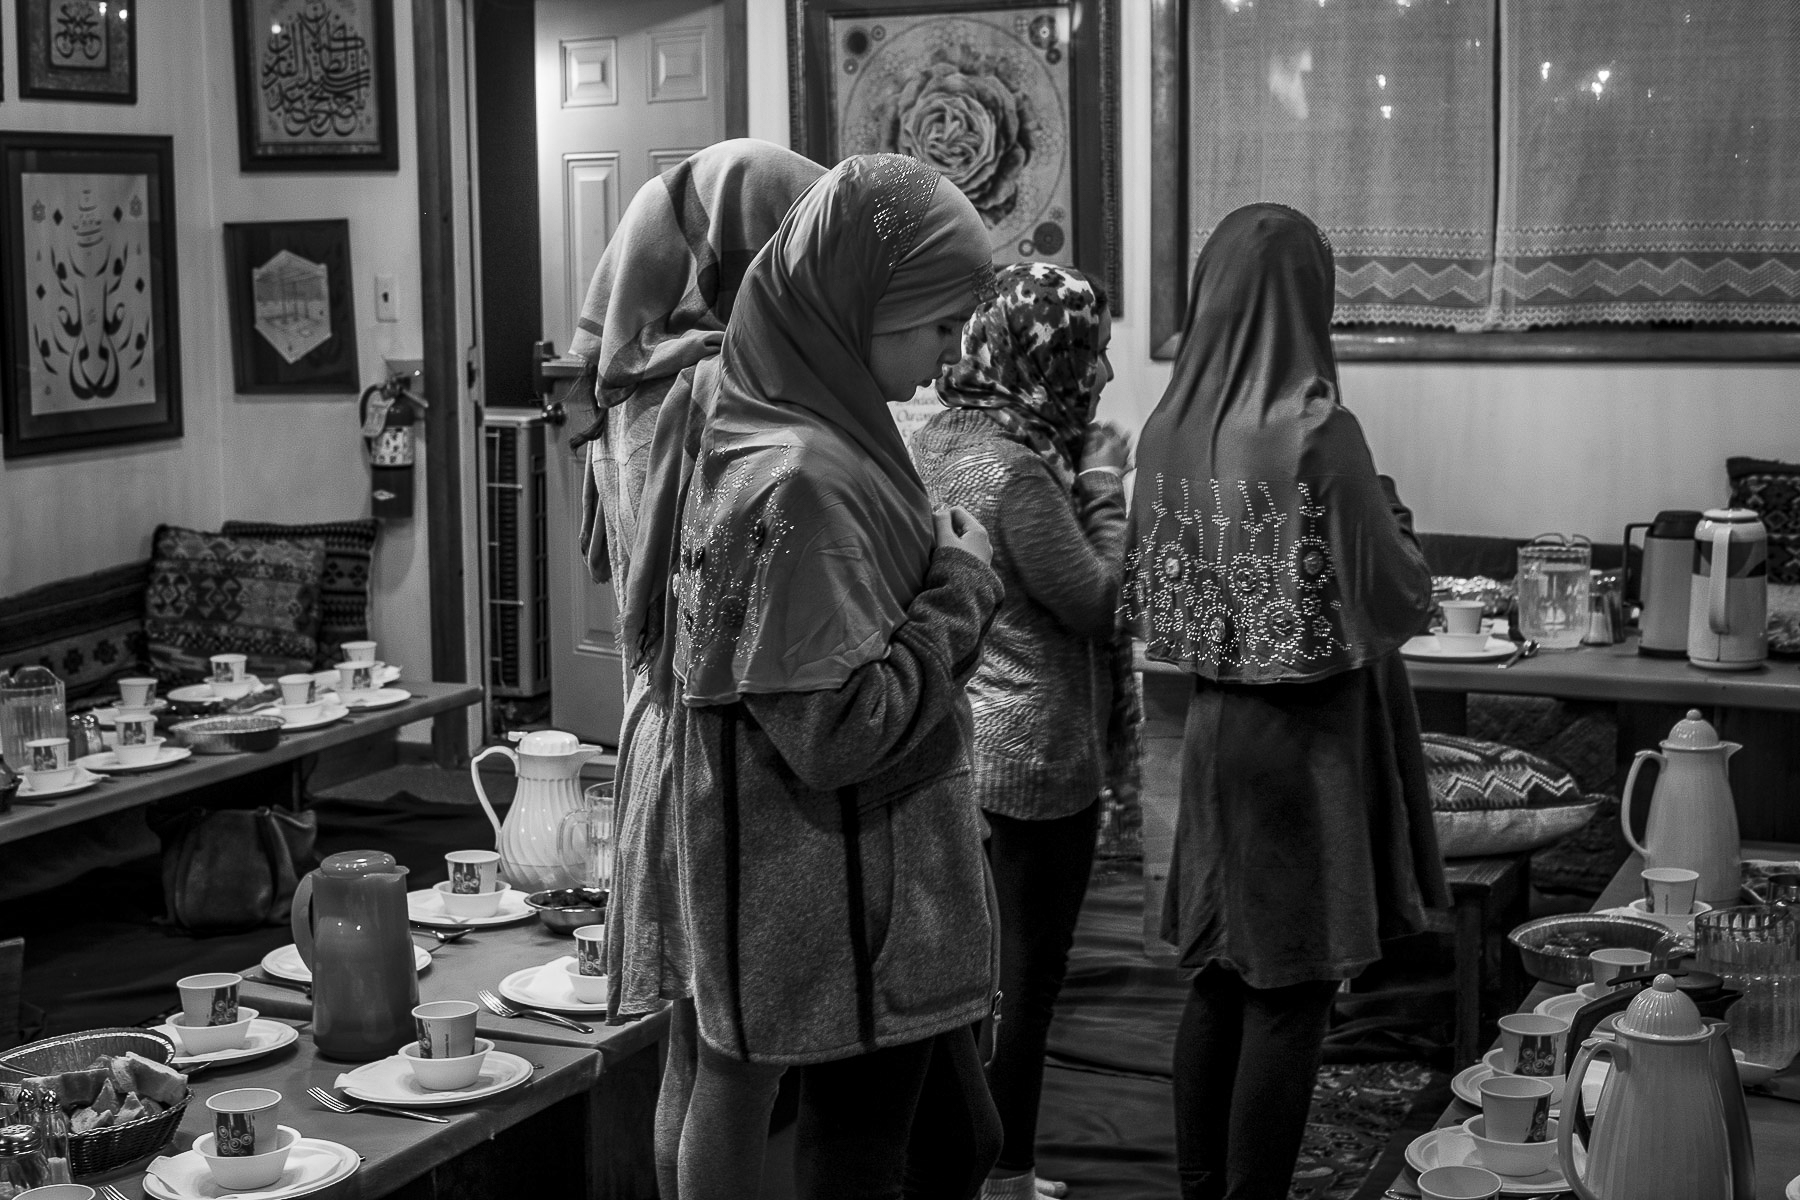 Young girls make their sunset prayer in the dining area of the mosque. Often, there are too many people to fit into the common prayer room and many members find themselves praying in between the tables that have been set for dinner.